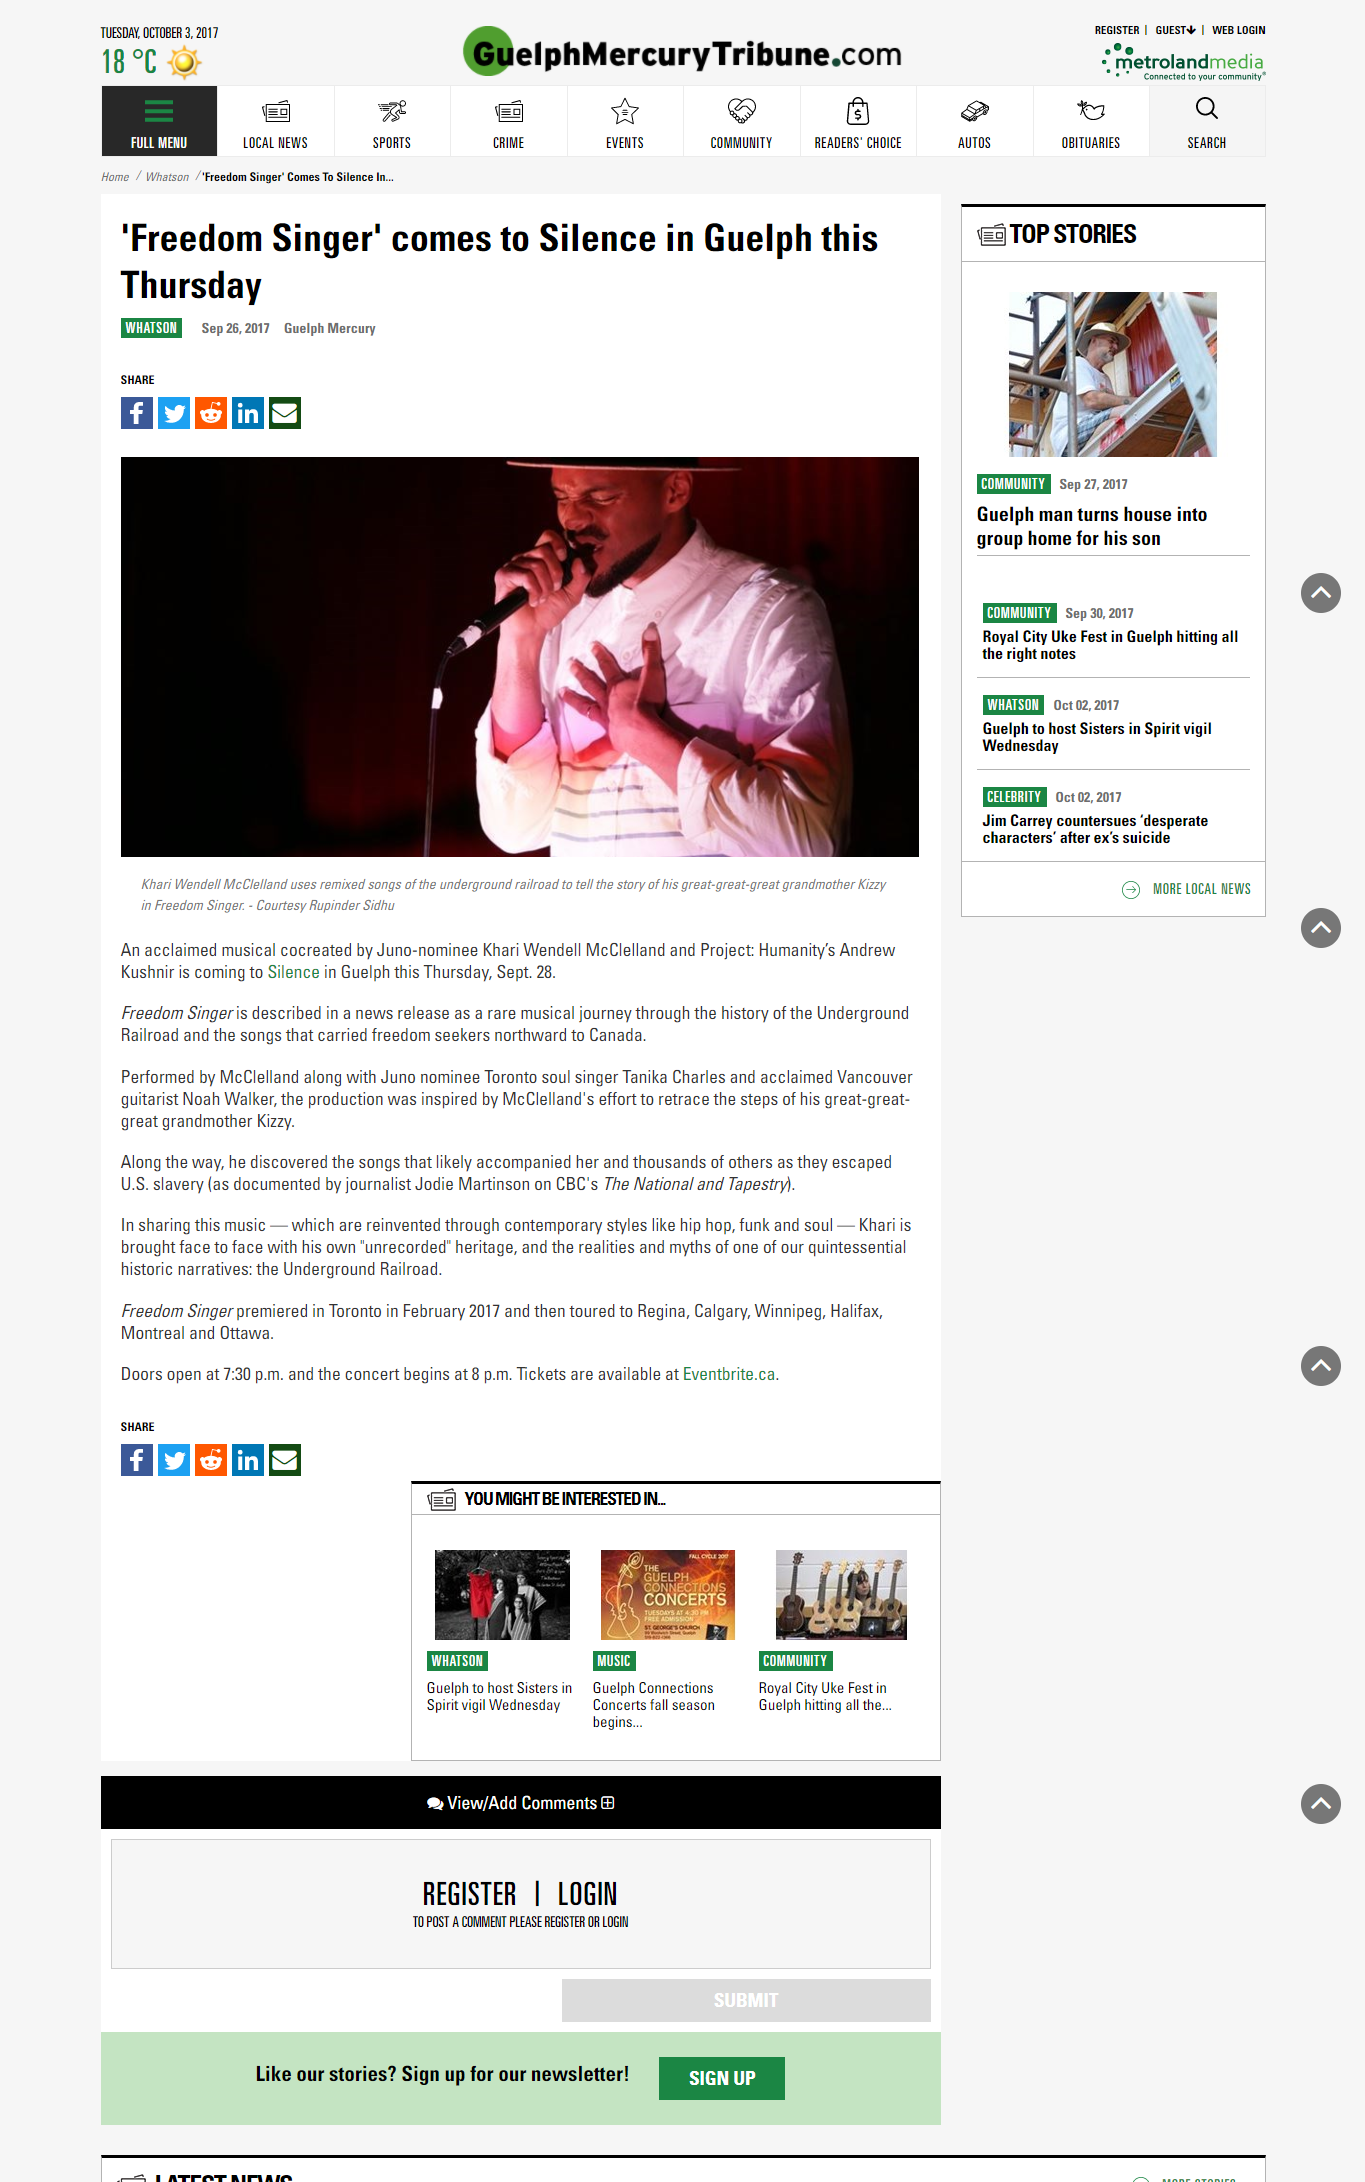 screencapture-guelphmercury-whatson-story-7578636-freedom-singer-comes-to-silence-in-guelph-this-thursday-1507051798109